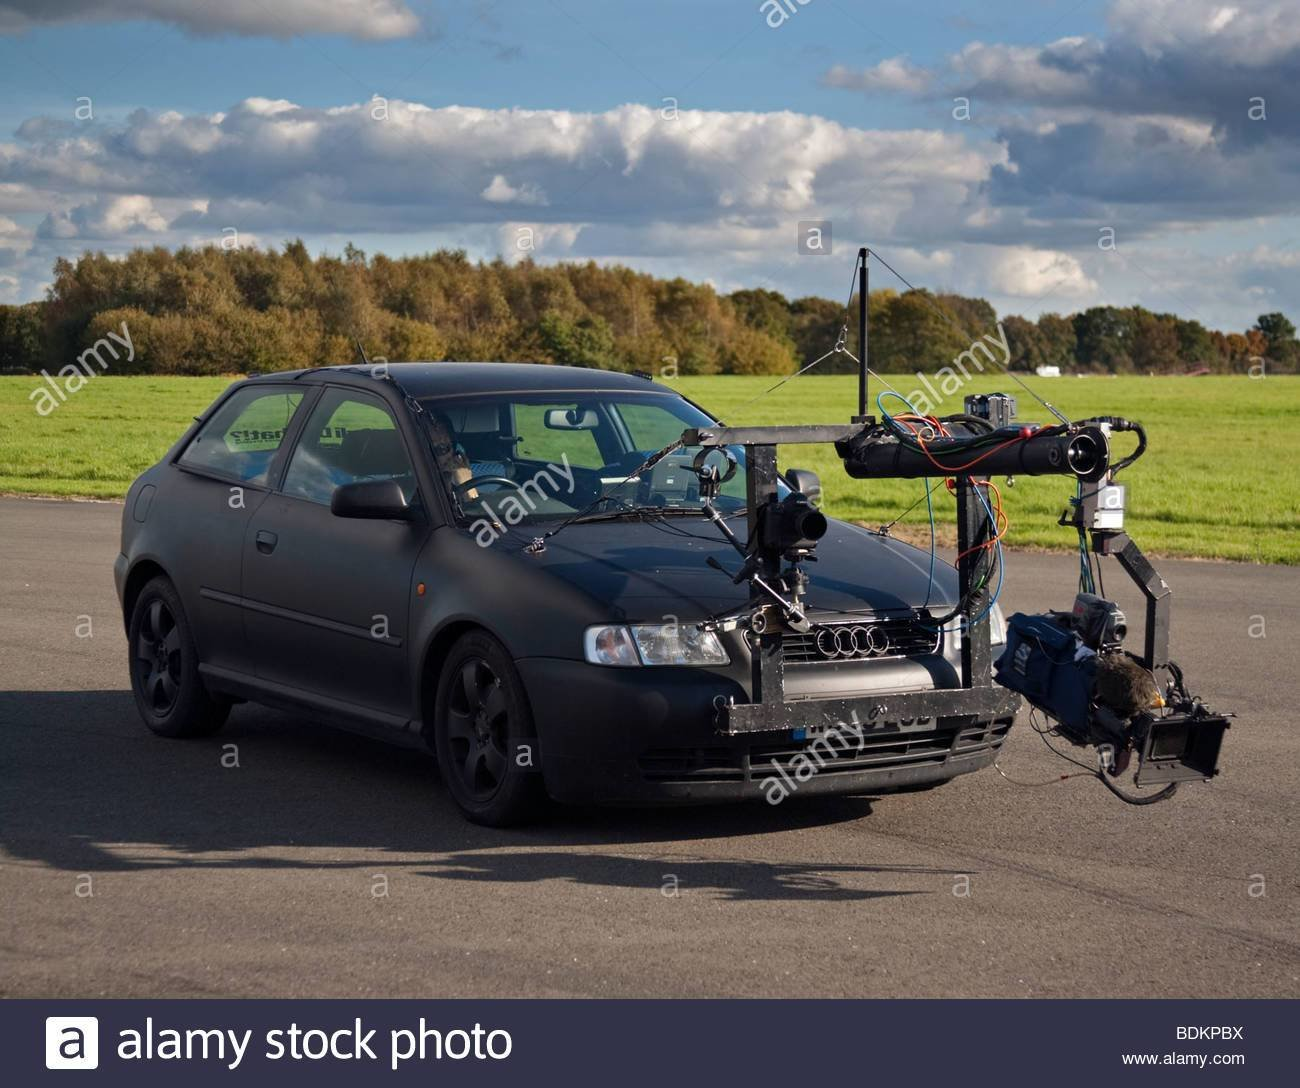 Latest Audi Car Fitted With Video Camera Equipment For Making A Free Download